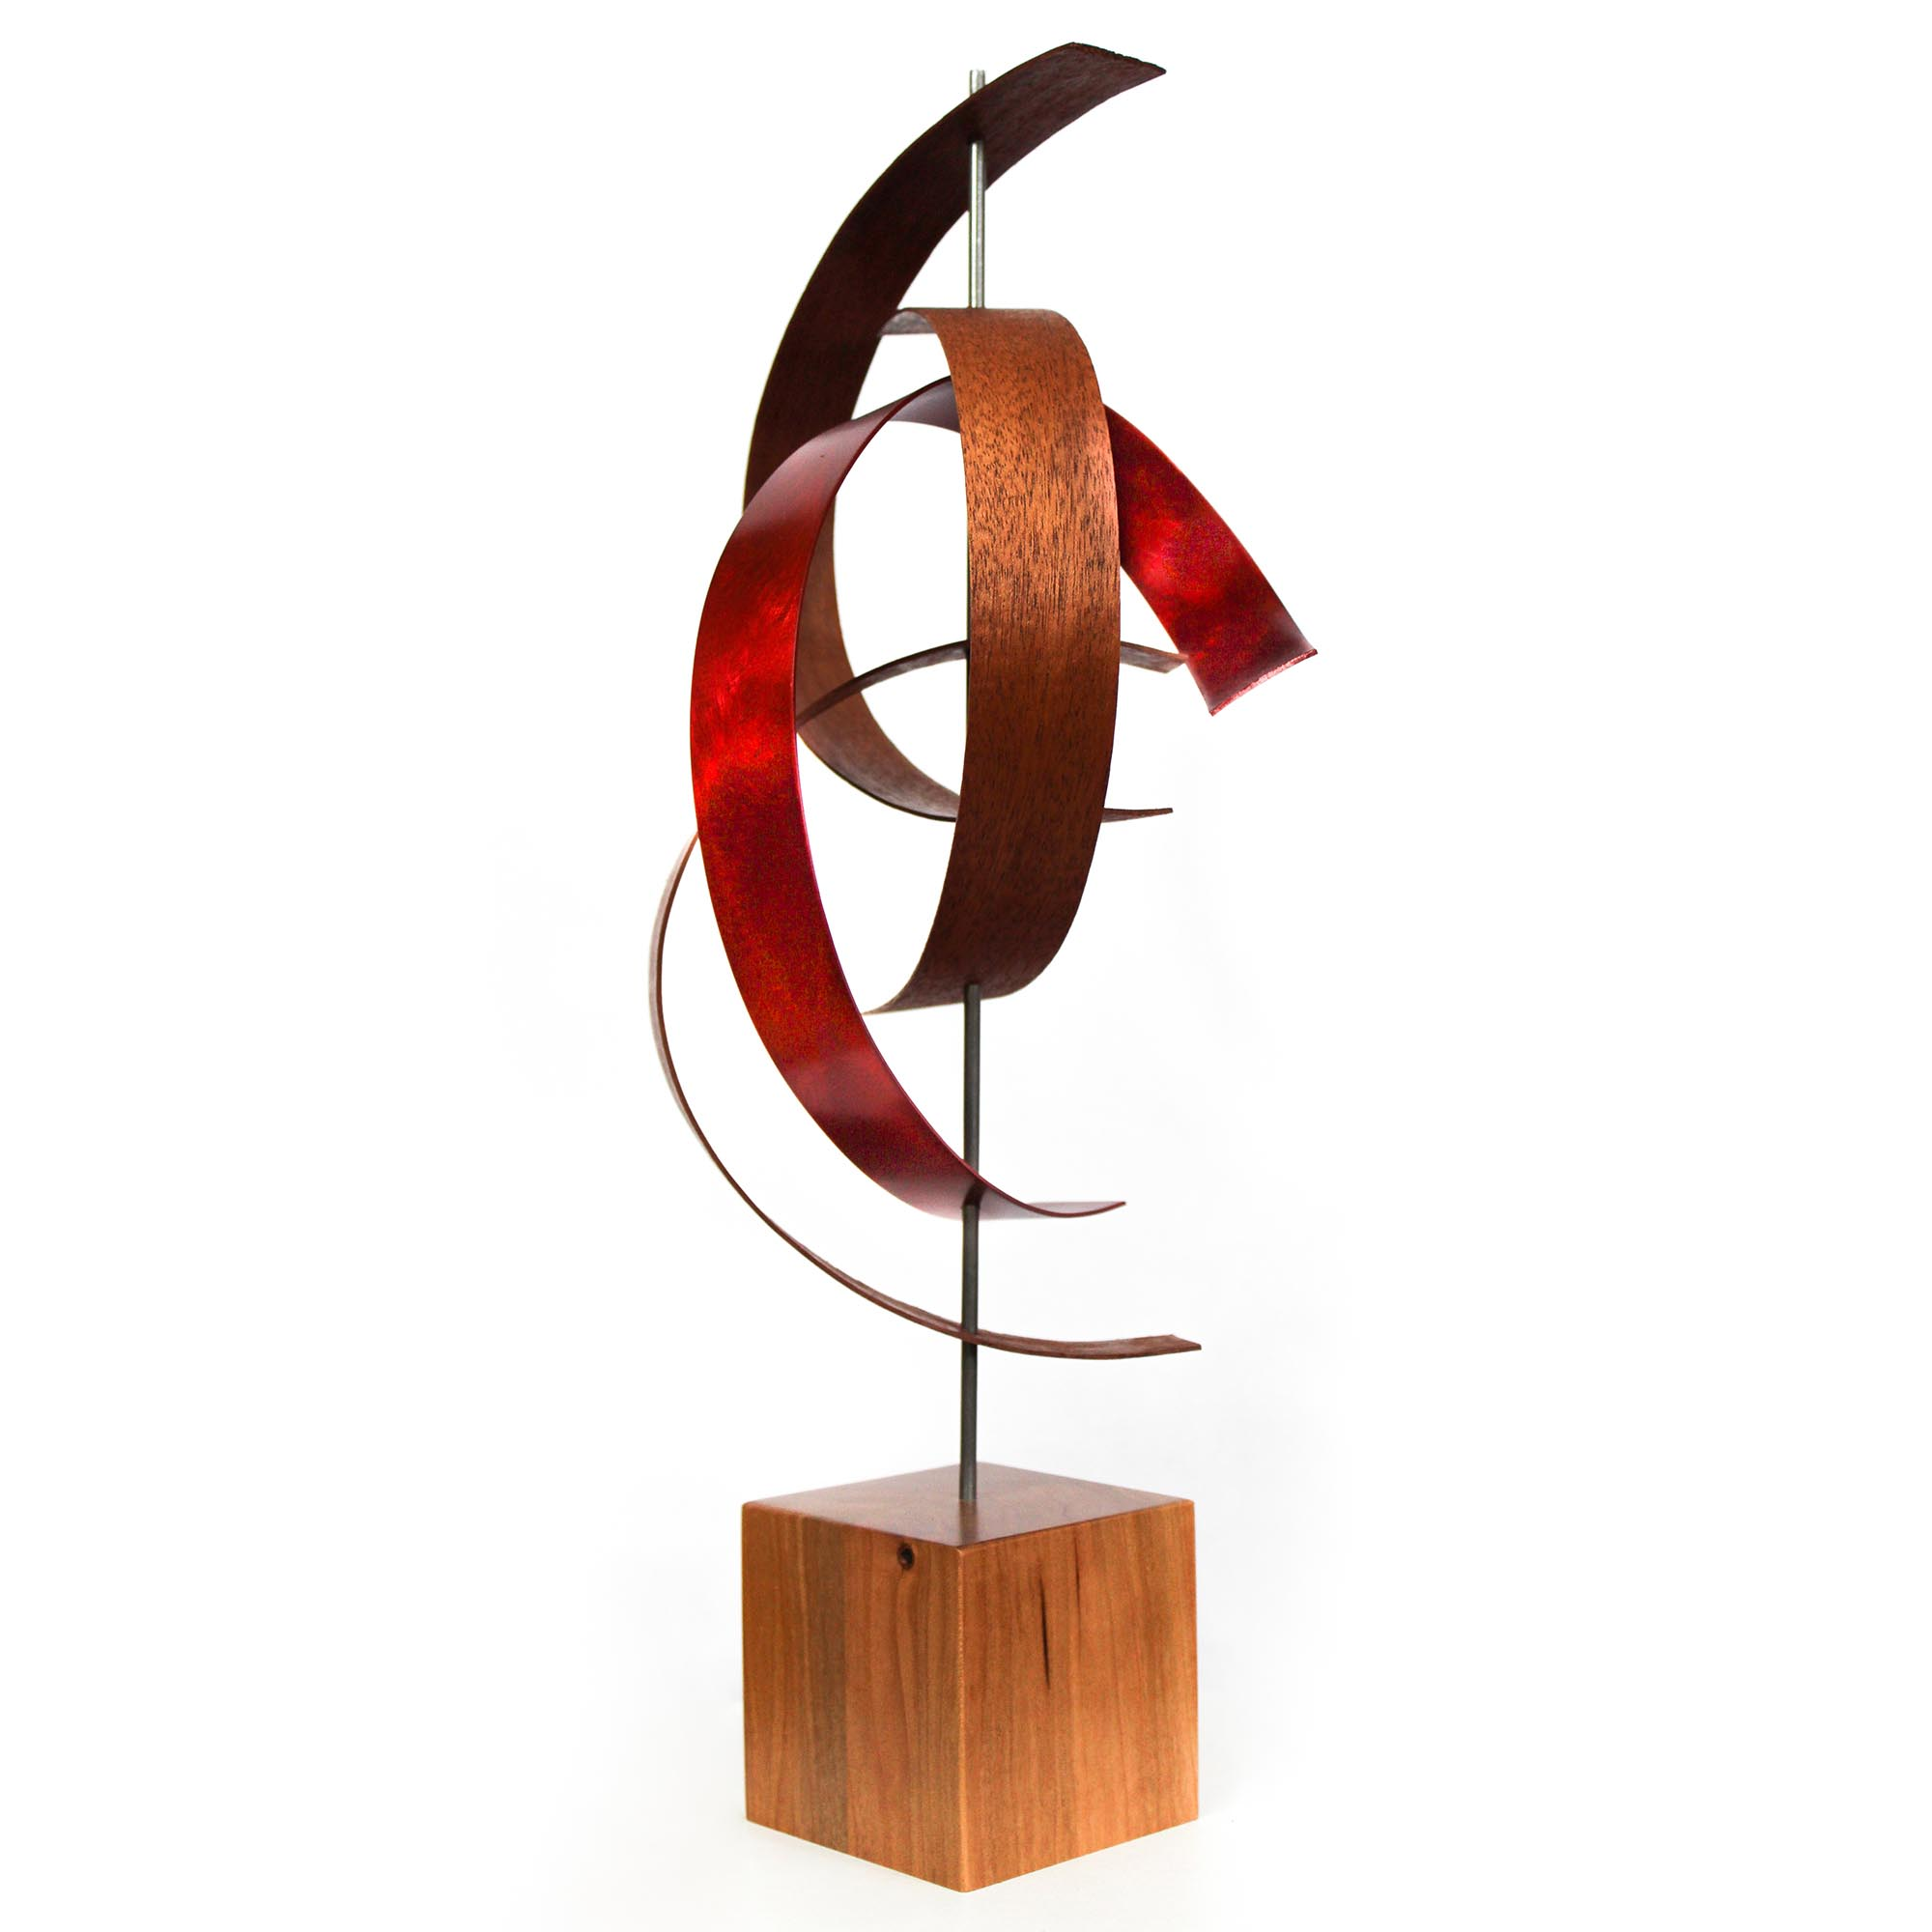 Jackson Wright 'Wind' 10in x 20in Contemporary Style Modern Wood Sculpture